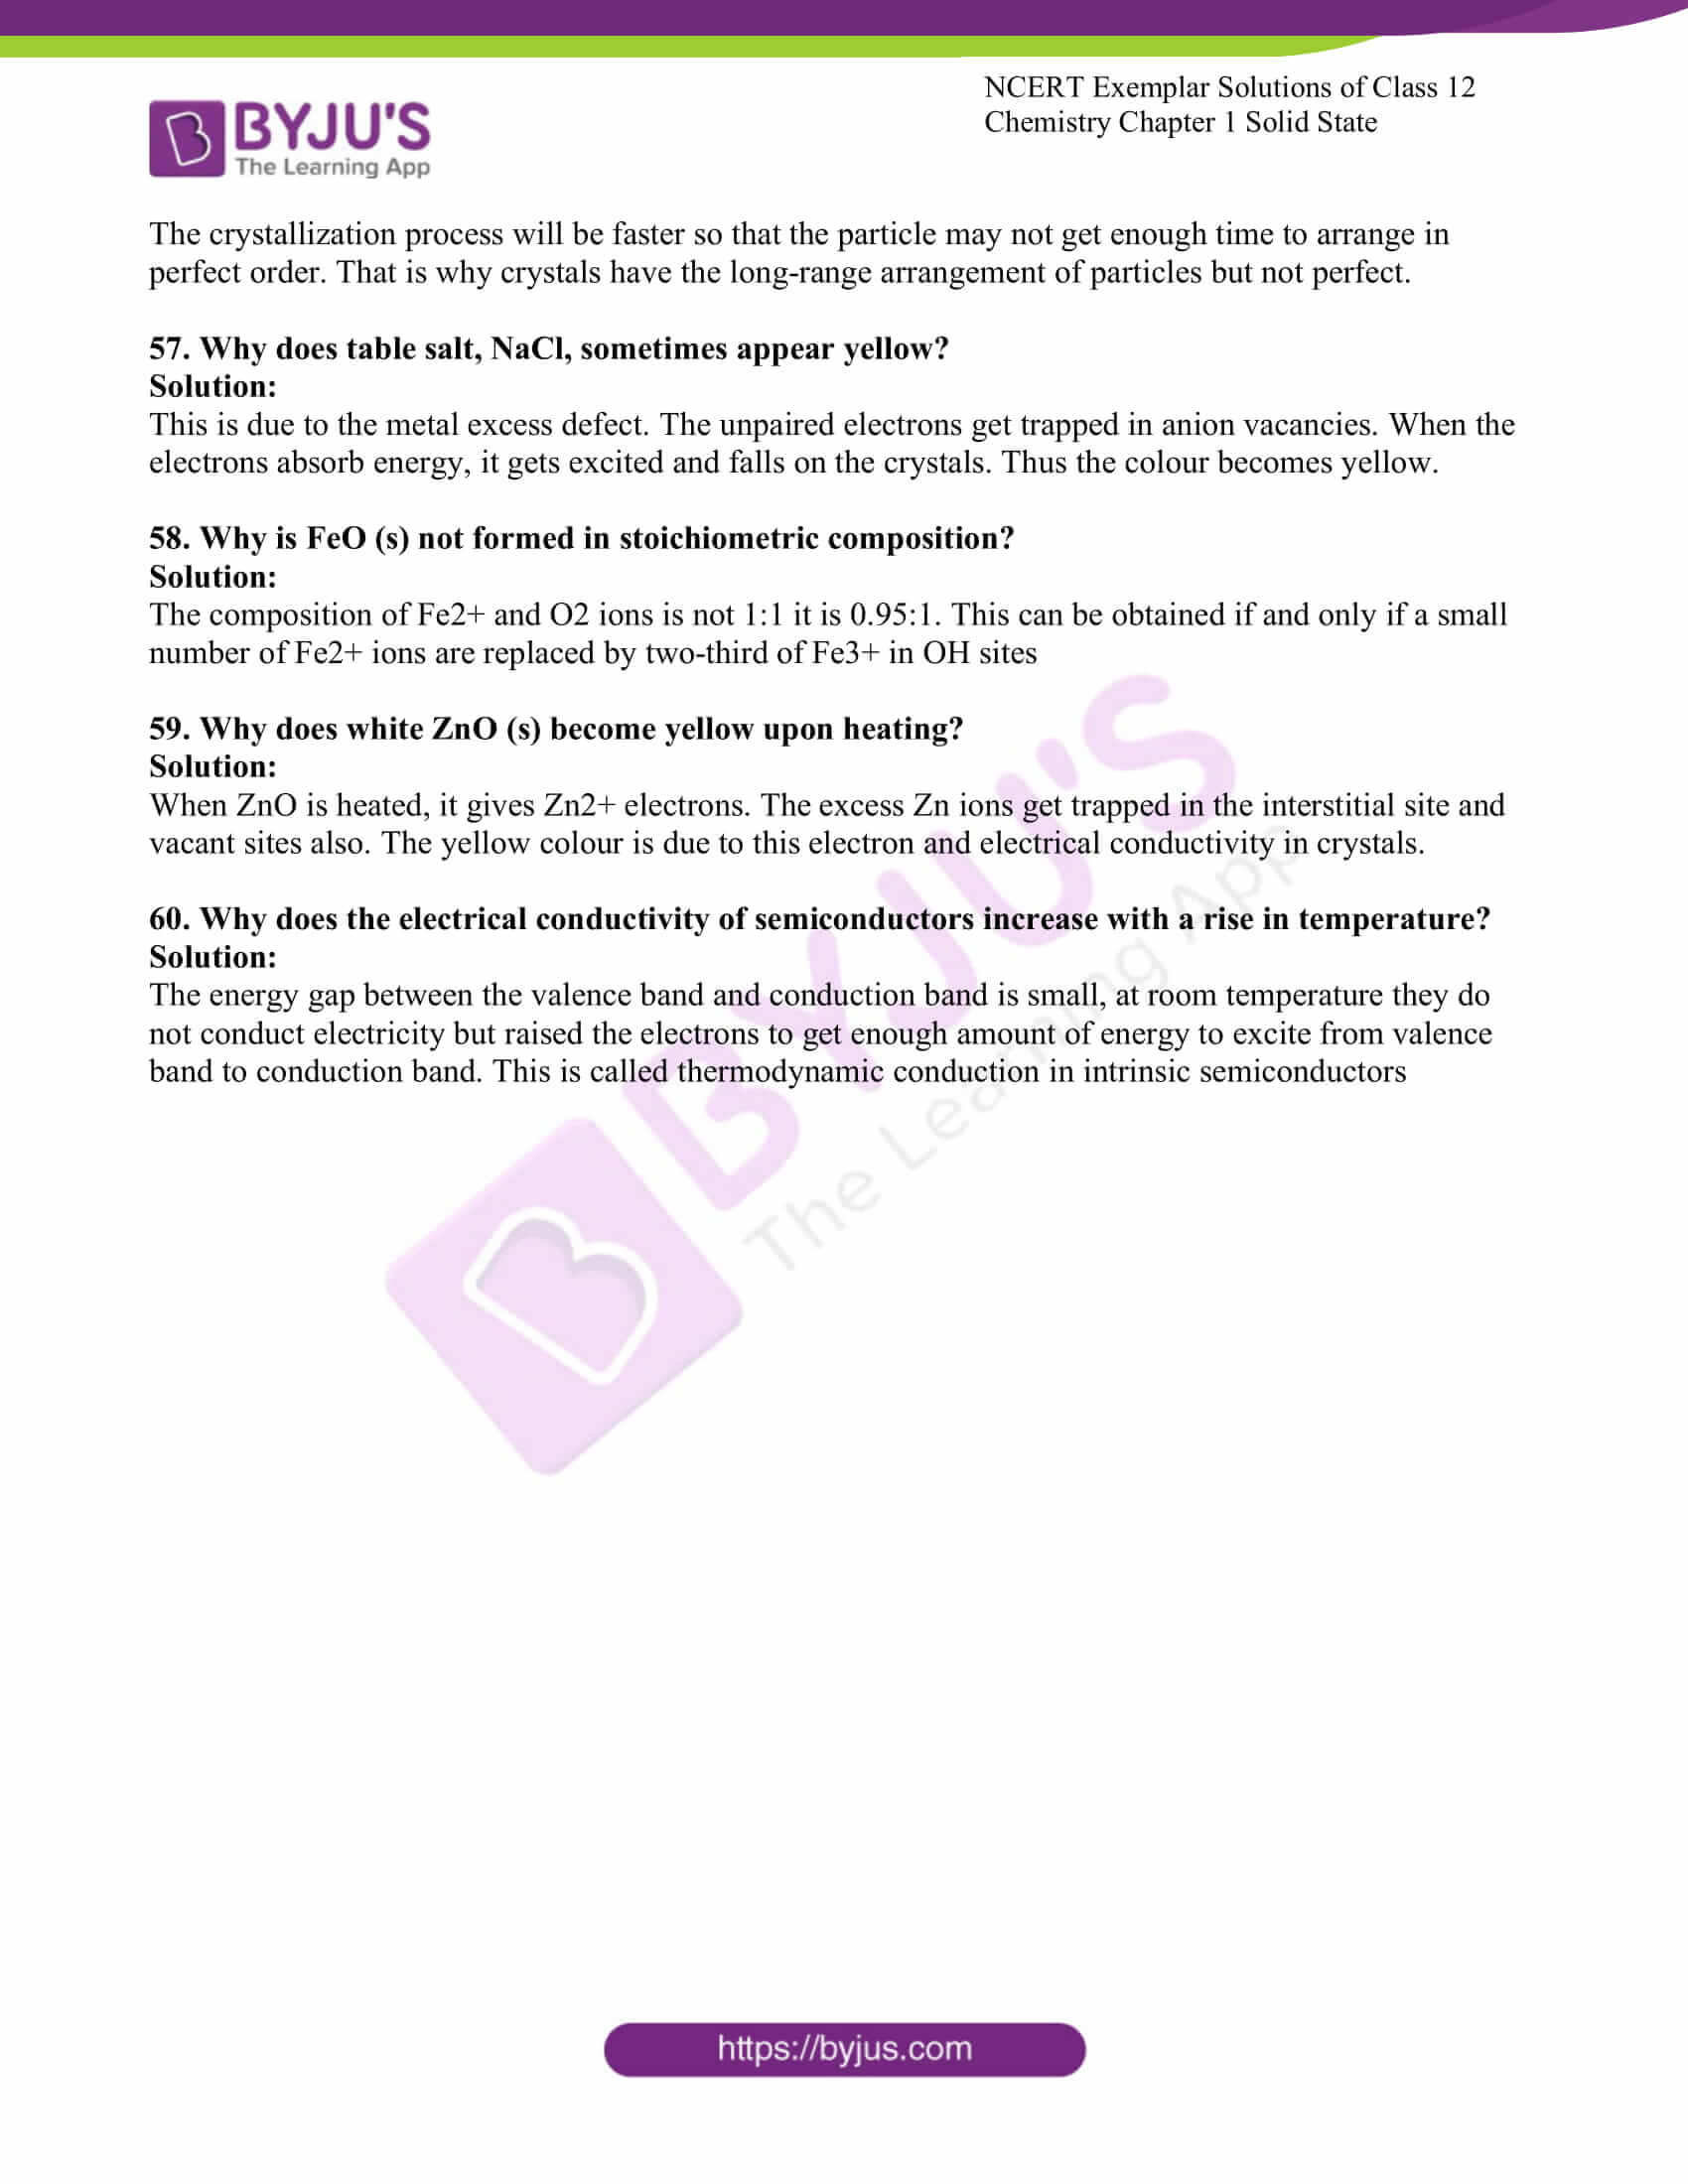 ncert exemplar solutions for class 12 chemistry chapter 1 solid 13